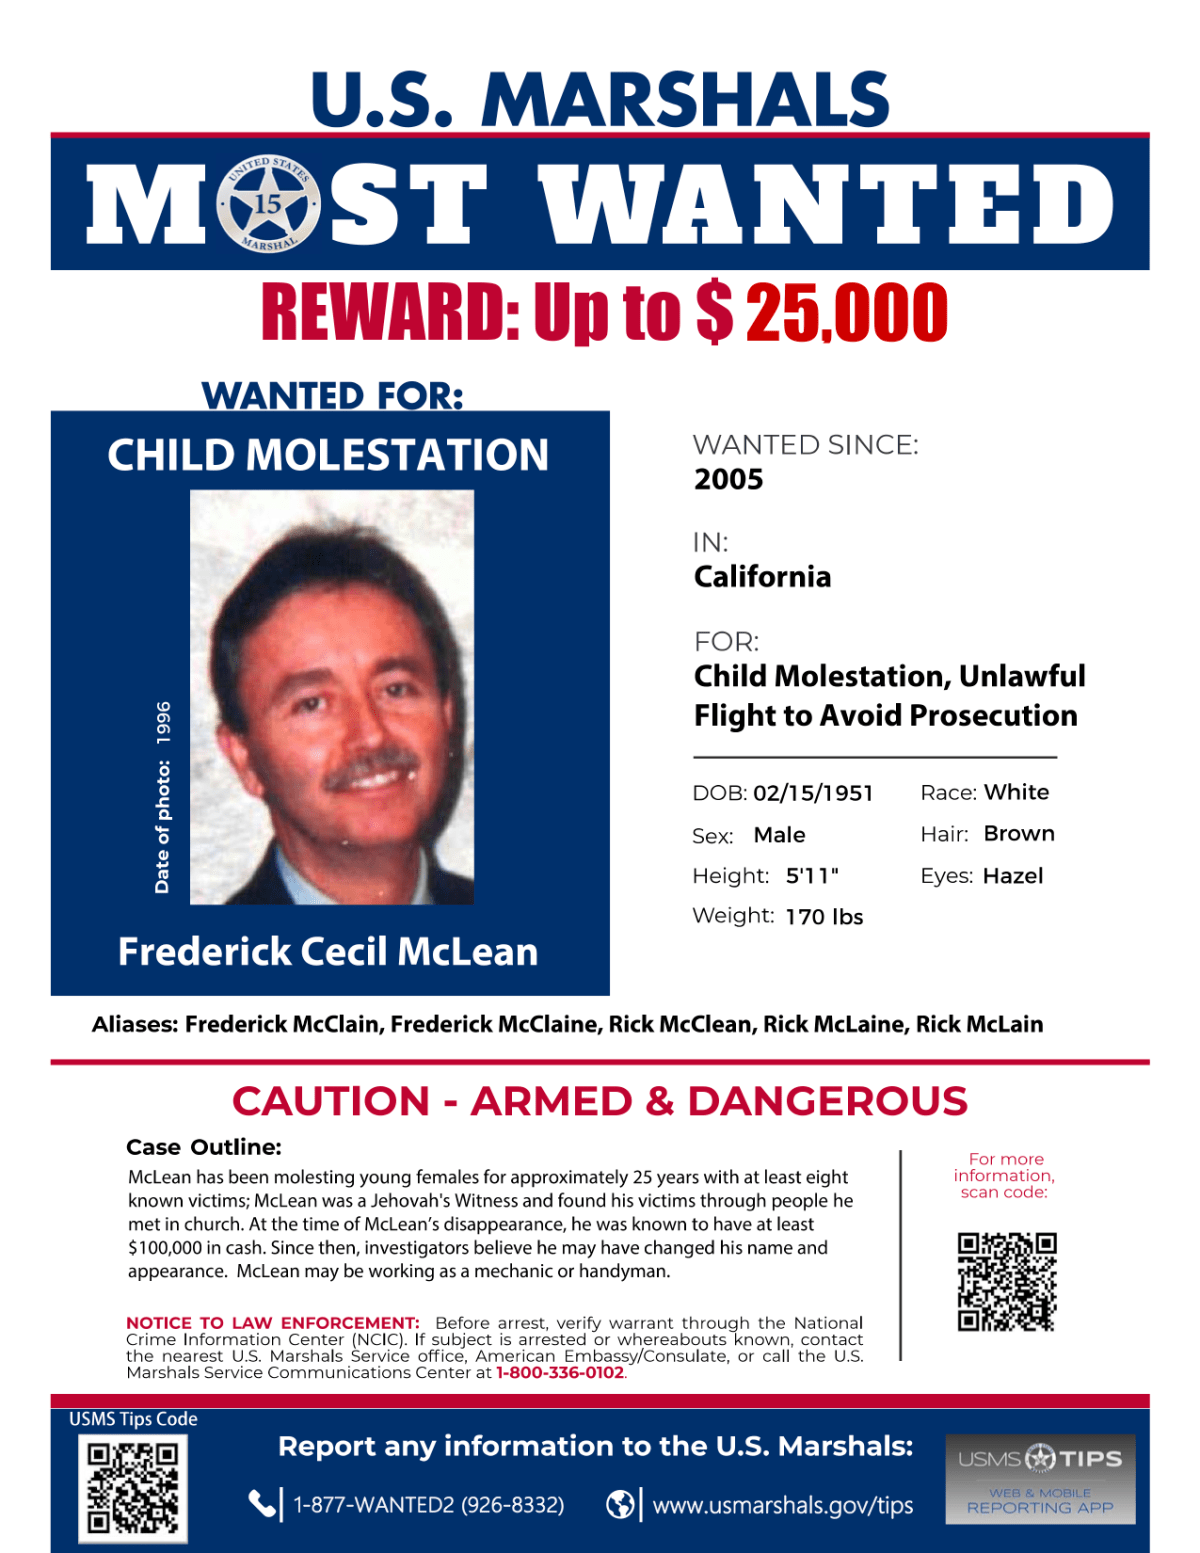 America's Most Wanted: Frederick Cecil McLean, Most Wanted Poster (2021)